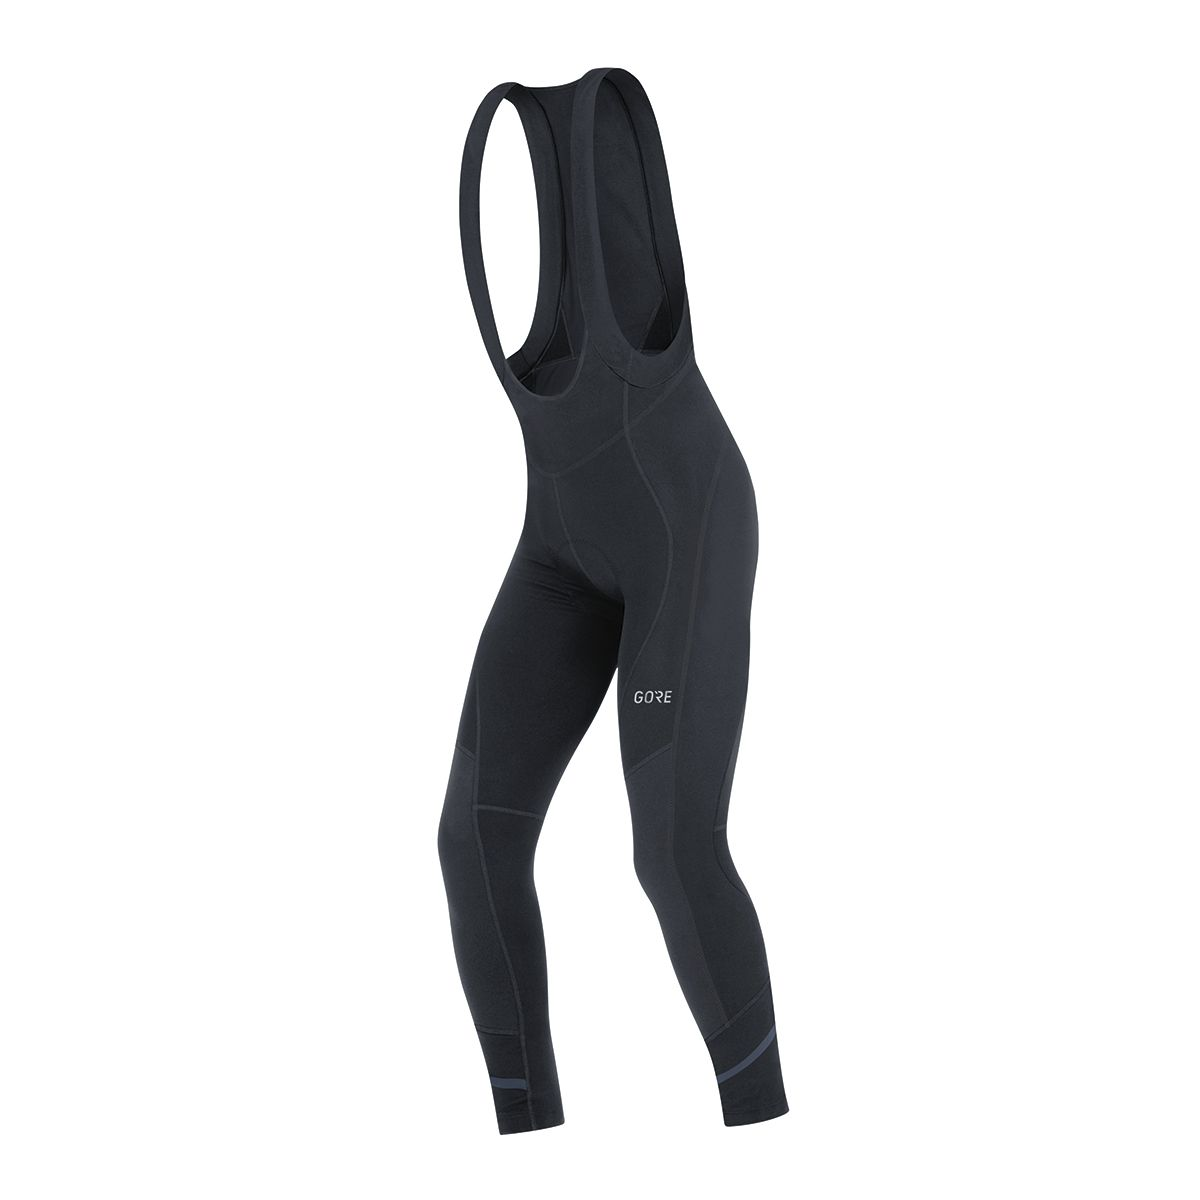 C5 THERMO BIB TIGHTS+ Herren Thermo Trägerhose